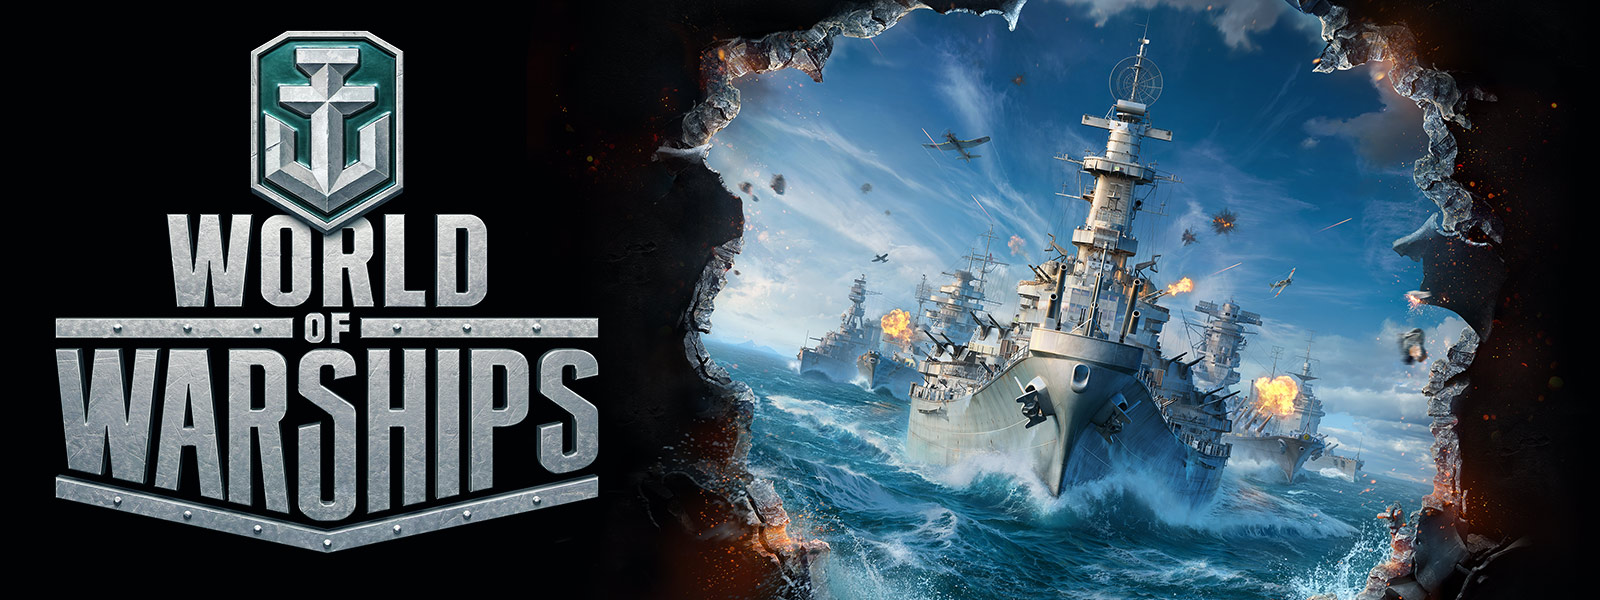 World of Warships, battleships and aircraft carriers open fire across an ocean